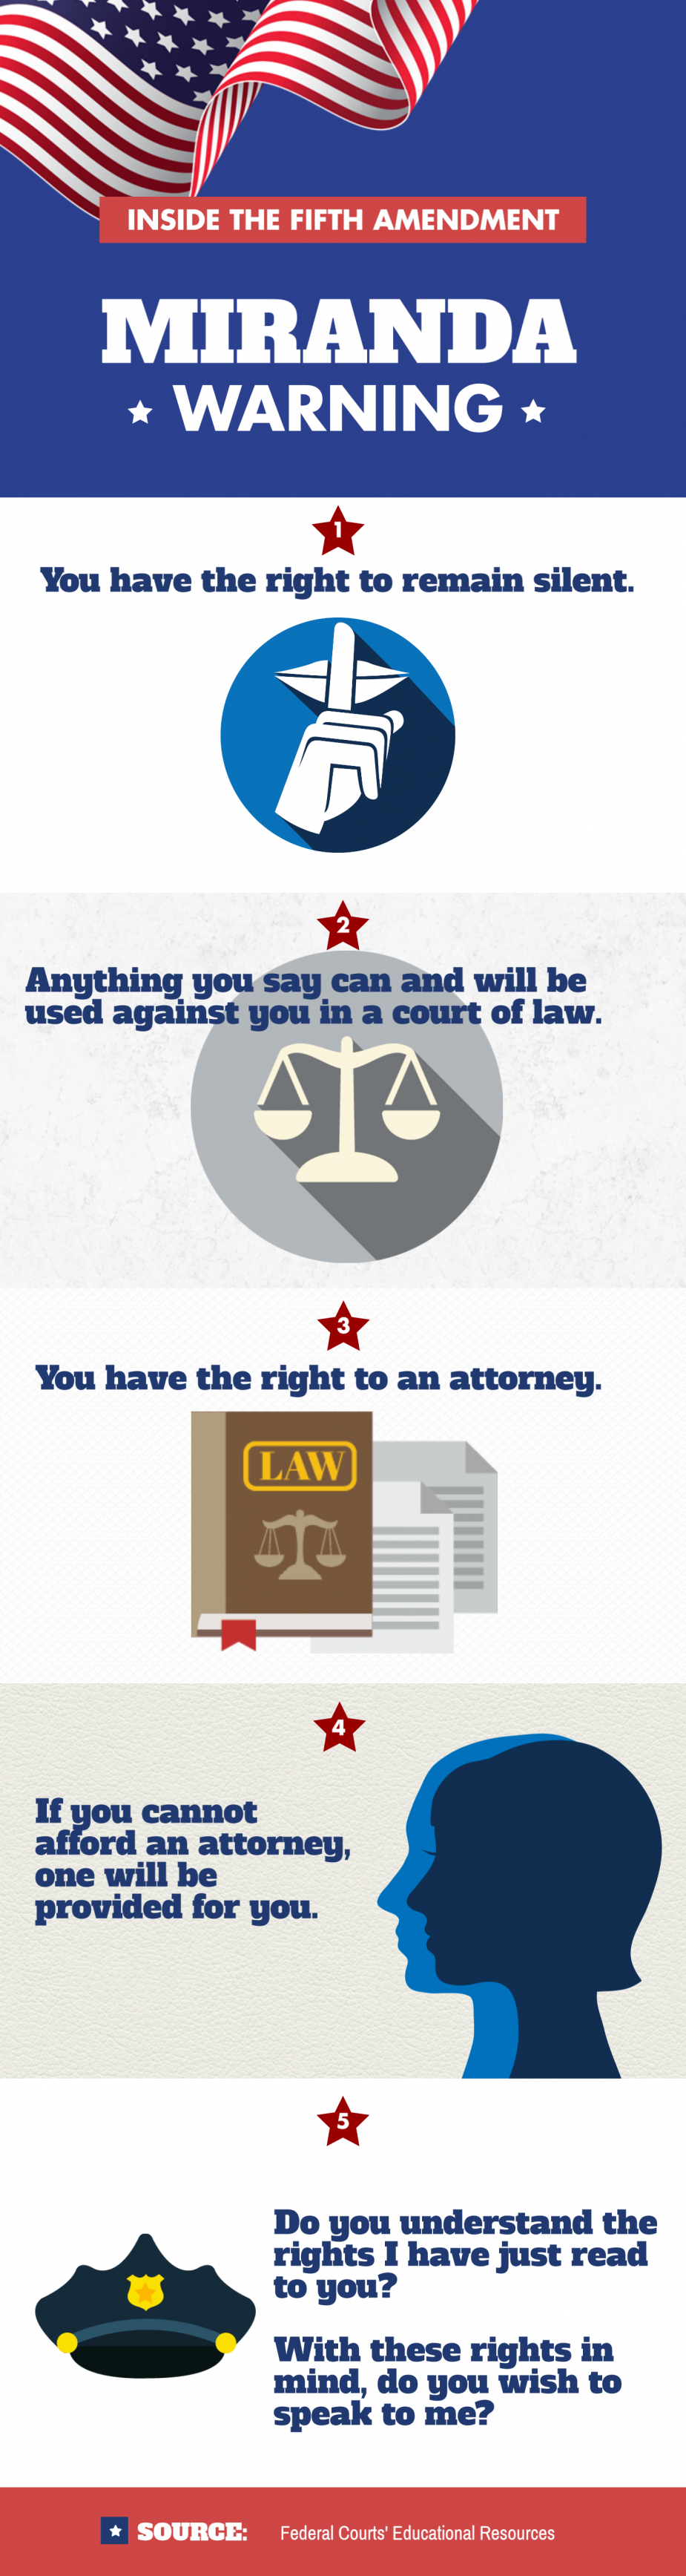 Infographic illustrating the five components of the Miranda Warning: You have the right to remain silent. Anything you say can and will be used against you in a court of law. You have the right to an attorney. If you cannot afford an attorney, one will be